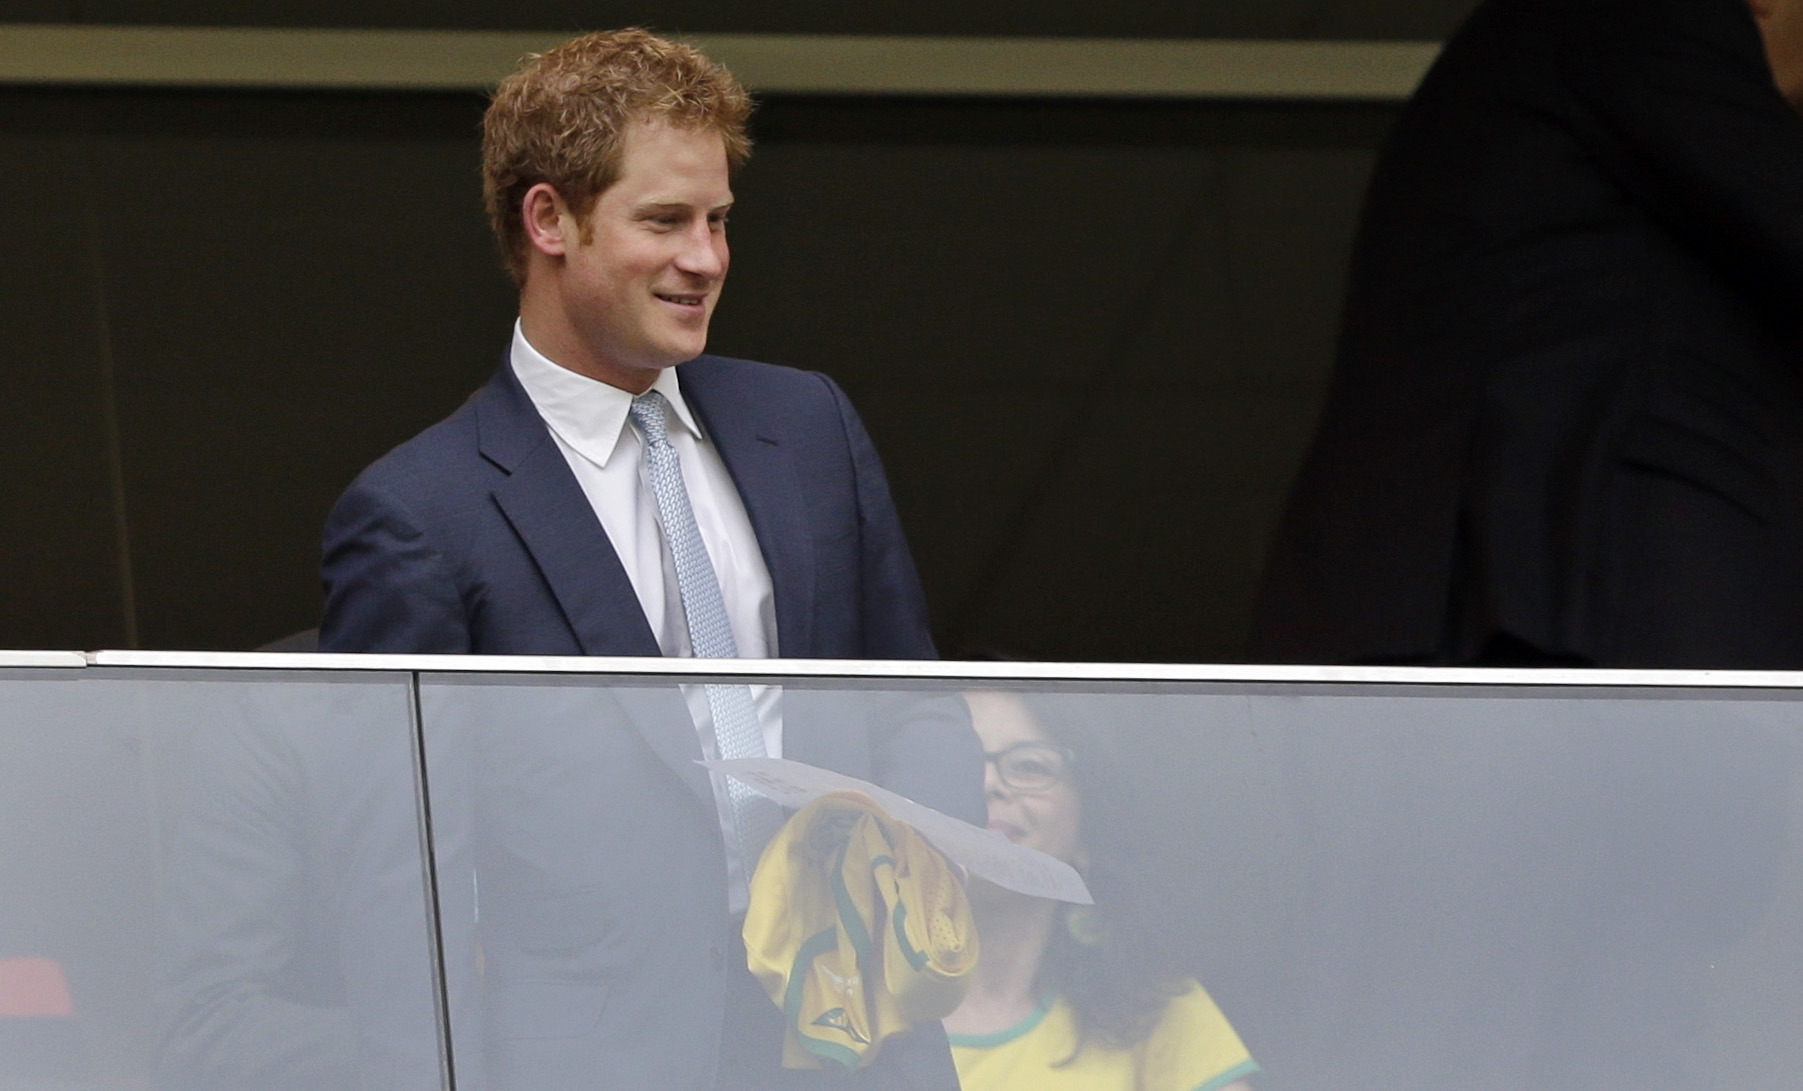 World Cup fever: Britain's Prince Harry holds a Brazil shirt as he arrives for the group A World Cup soccer match between Cameroon and Brazil in Brasilia on Monday.